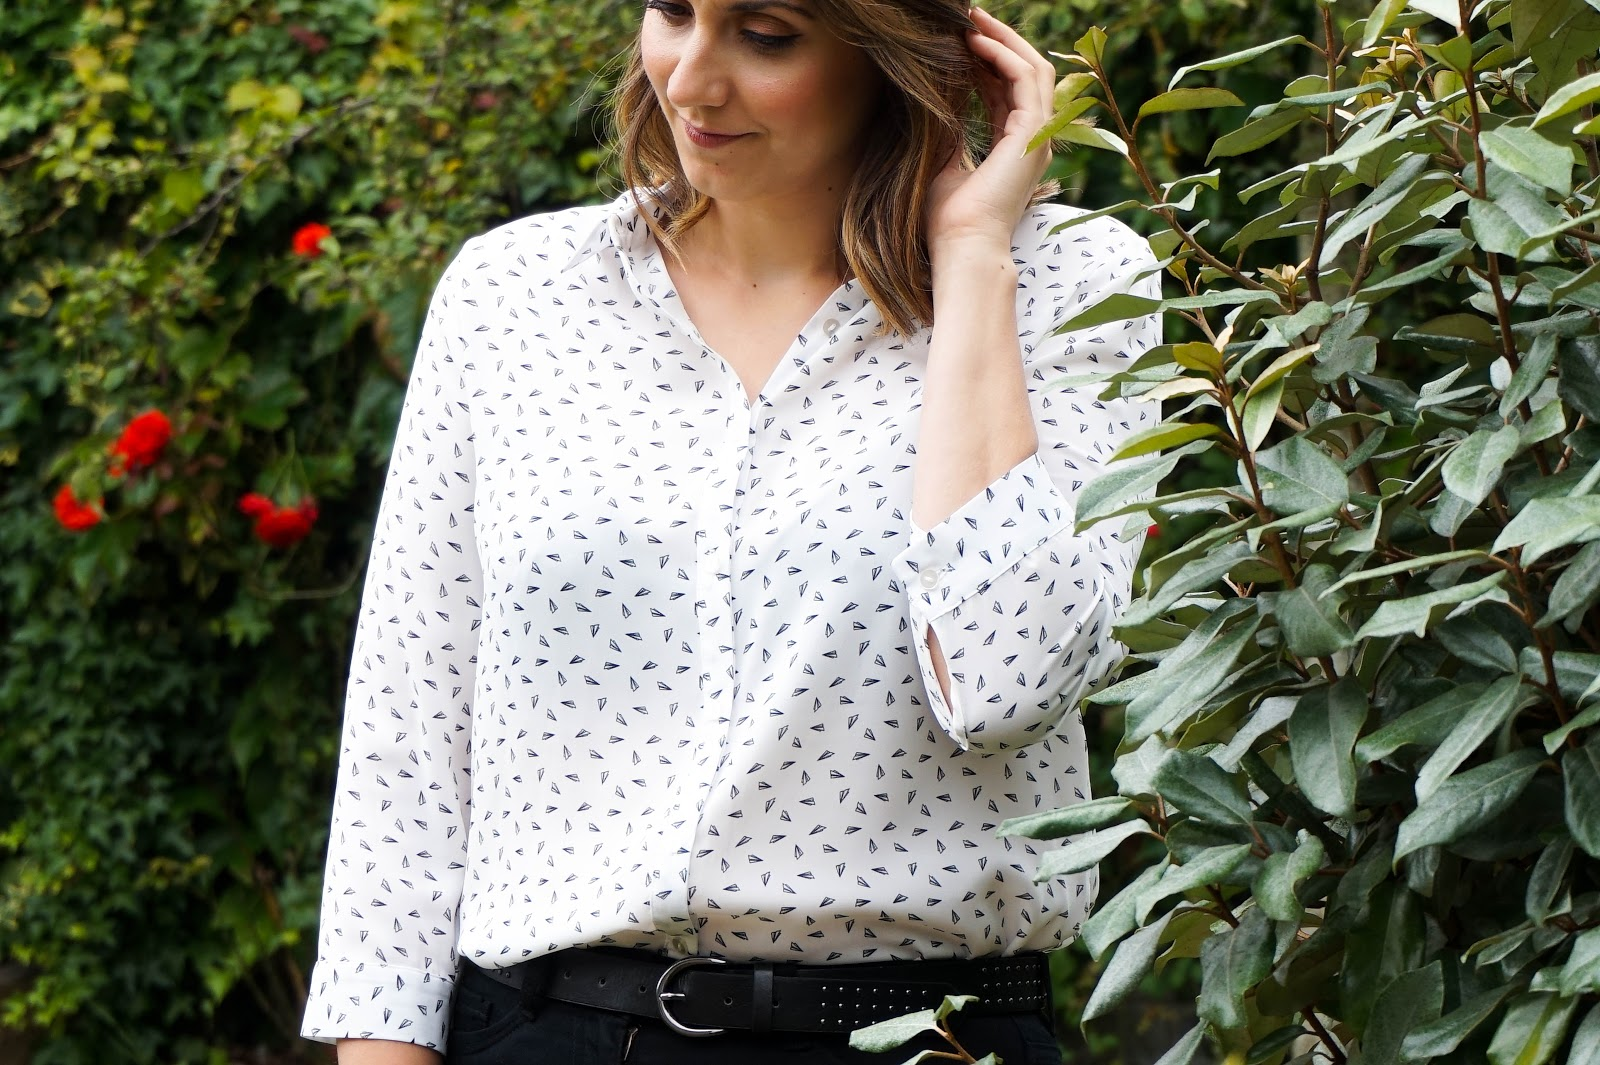 Summer Shirt Styles feat. H&M and Primark